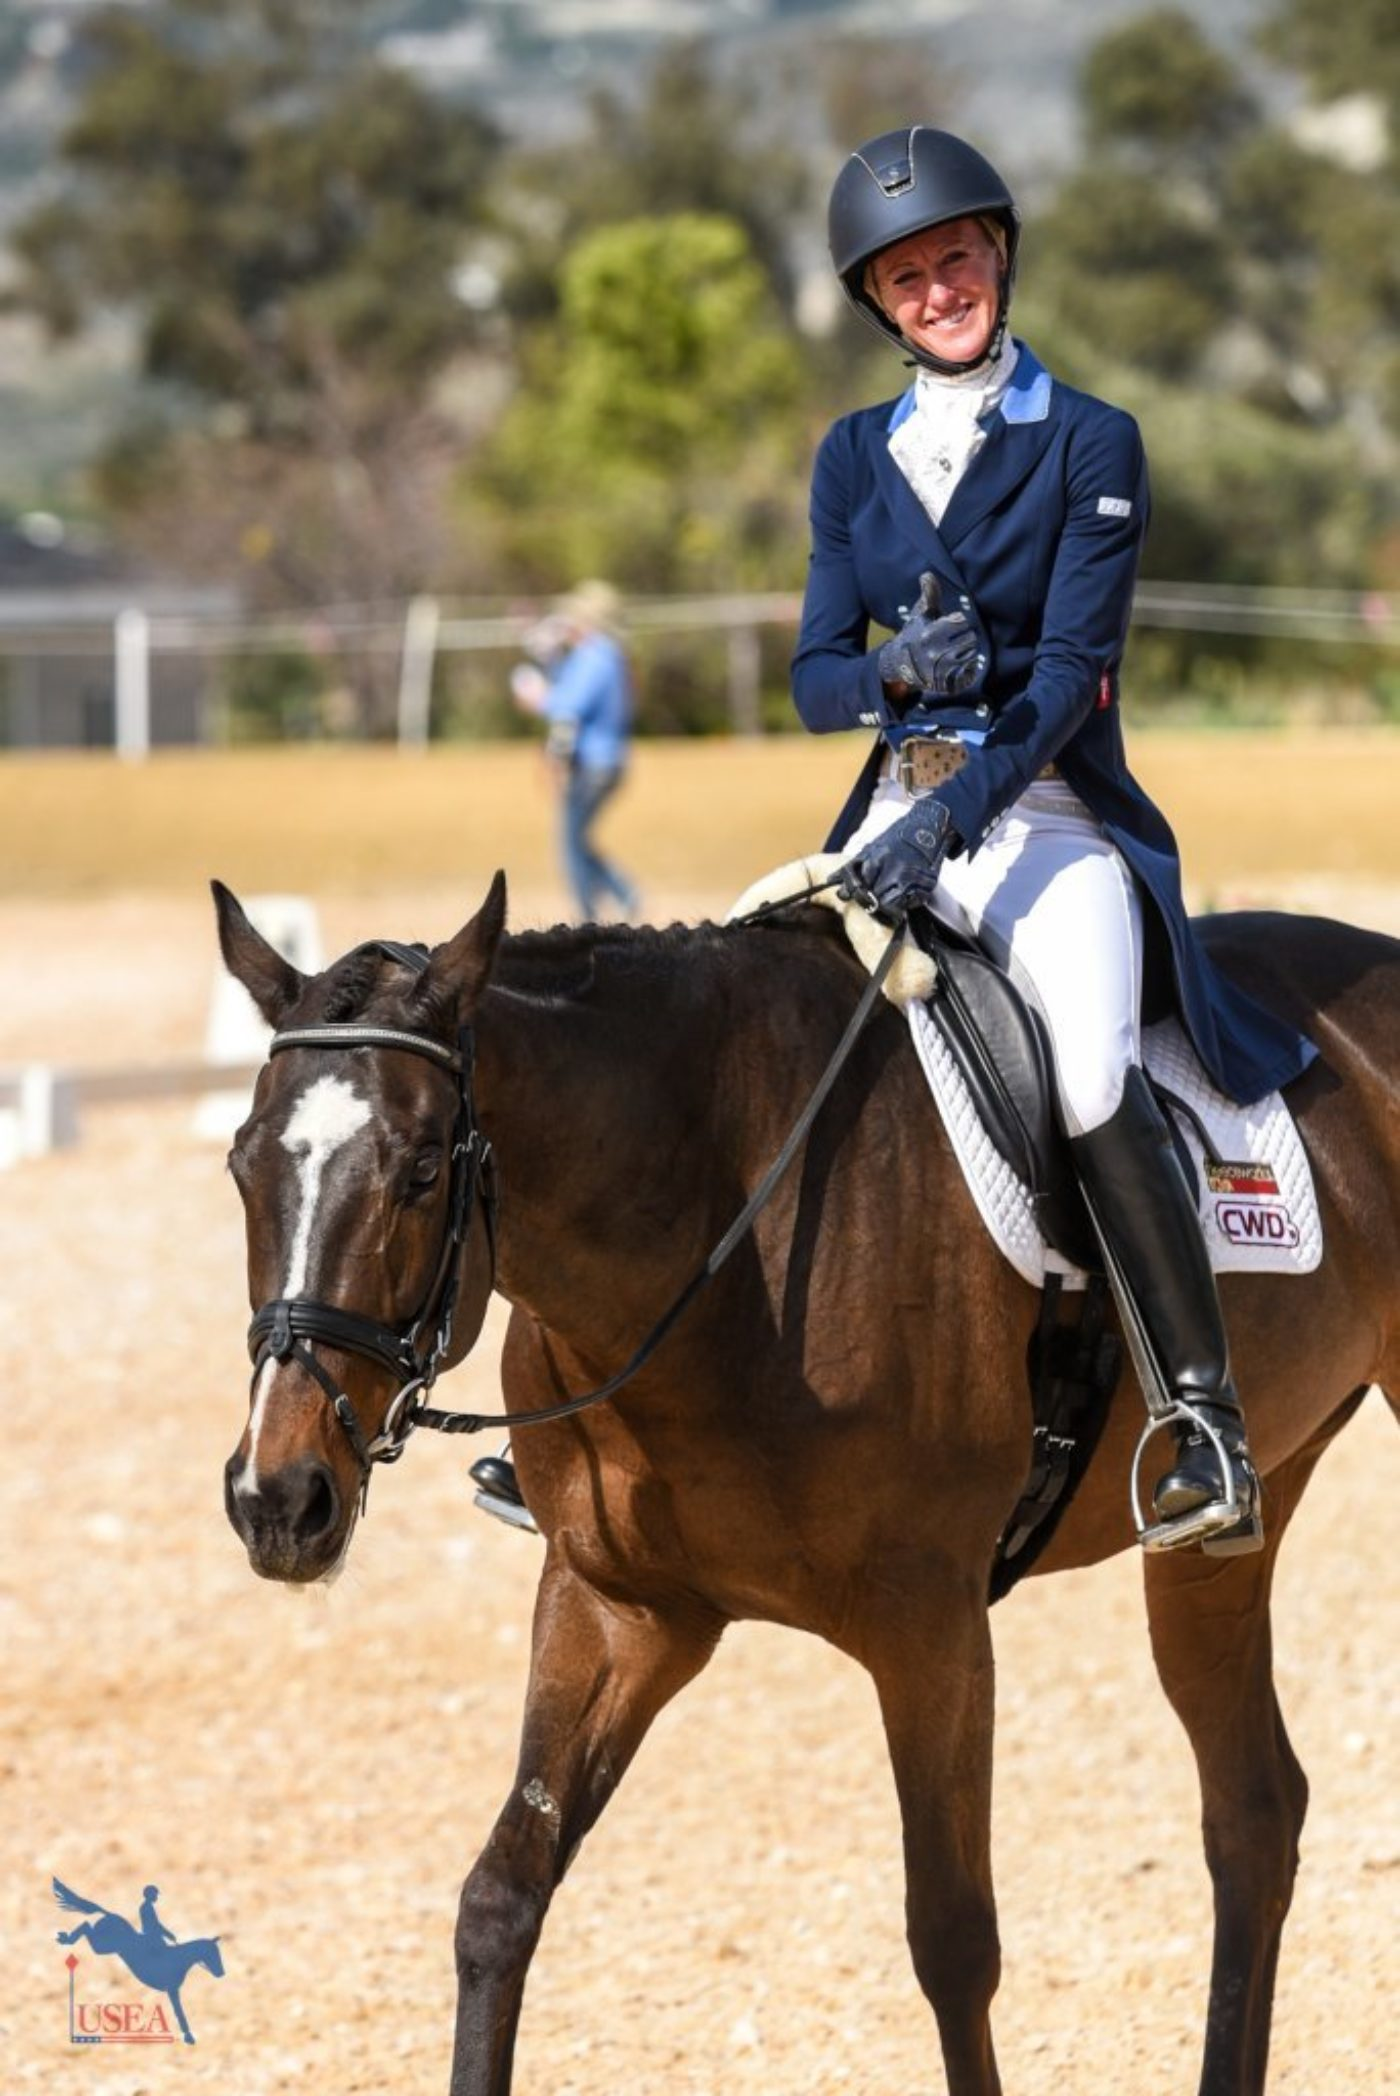 All smiles from Andrea Baxter at the conclusion of her dressage test with Indy 500. USEA/Jessica Duffy Photo.